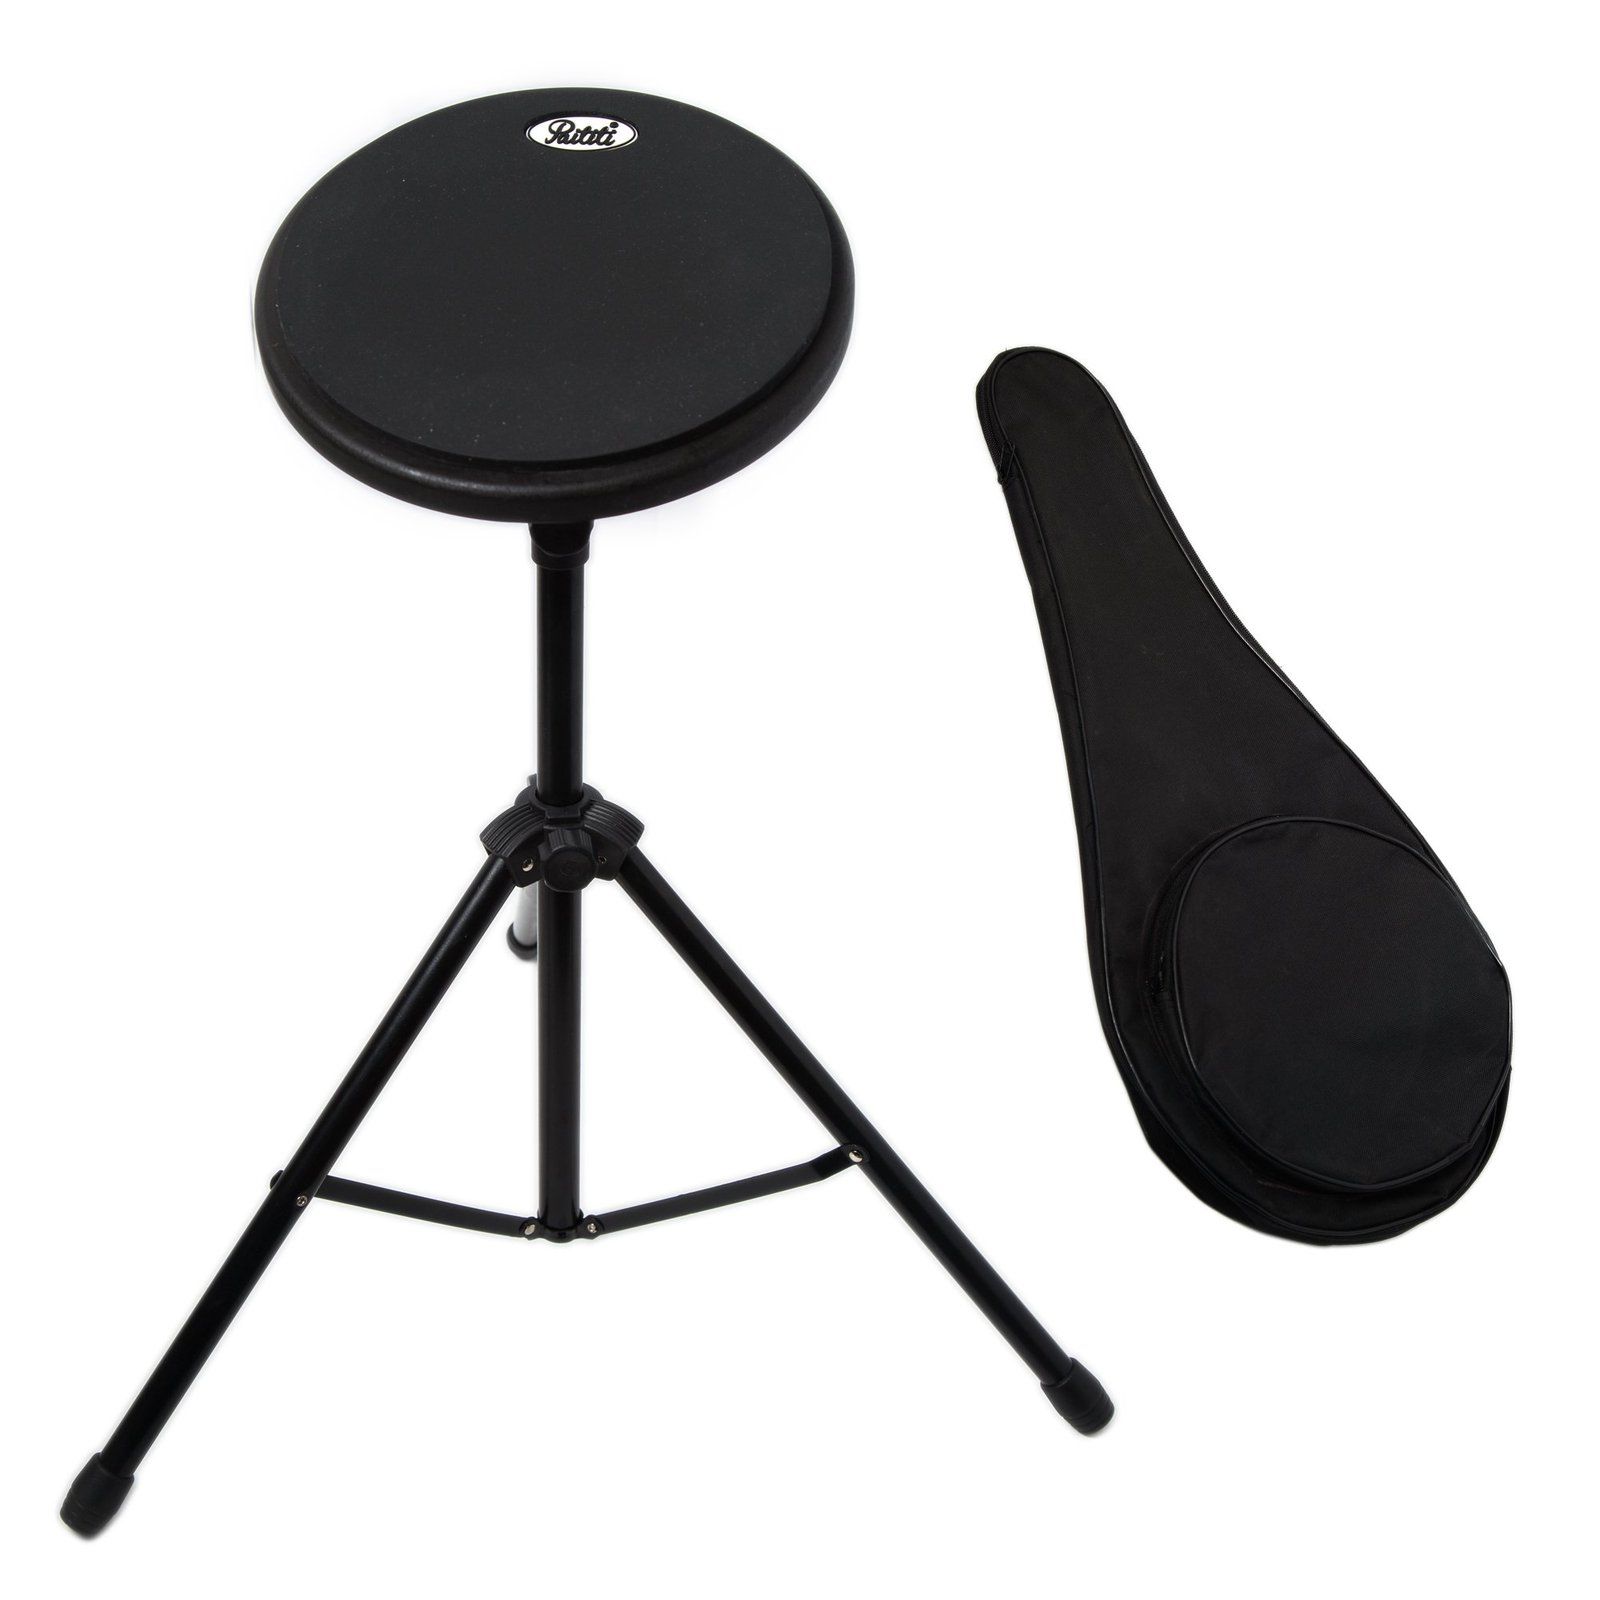 Paititi 8 inch Practice Drum Pad with Adjustable Stand & Carrying Bag (Green)